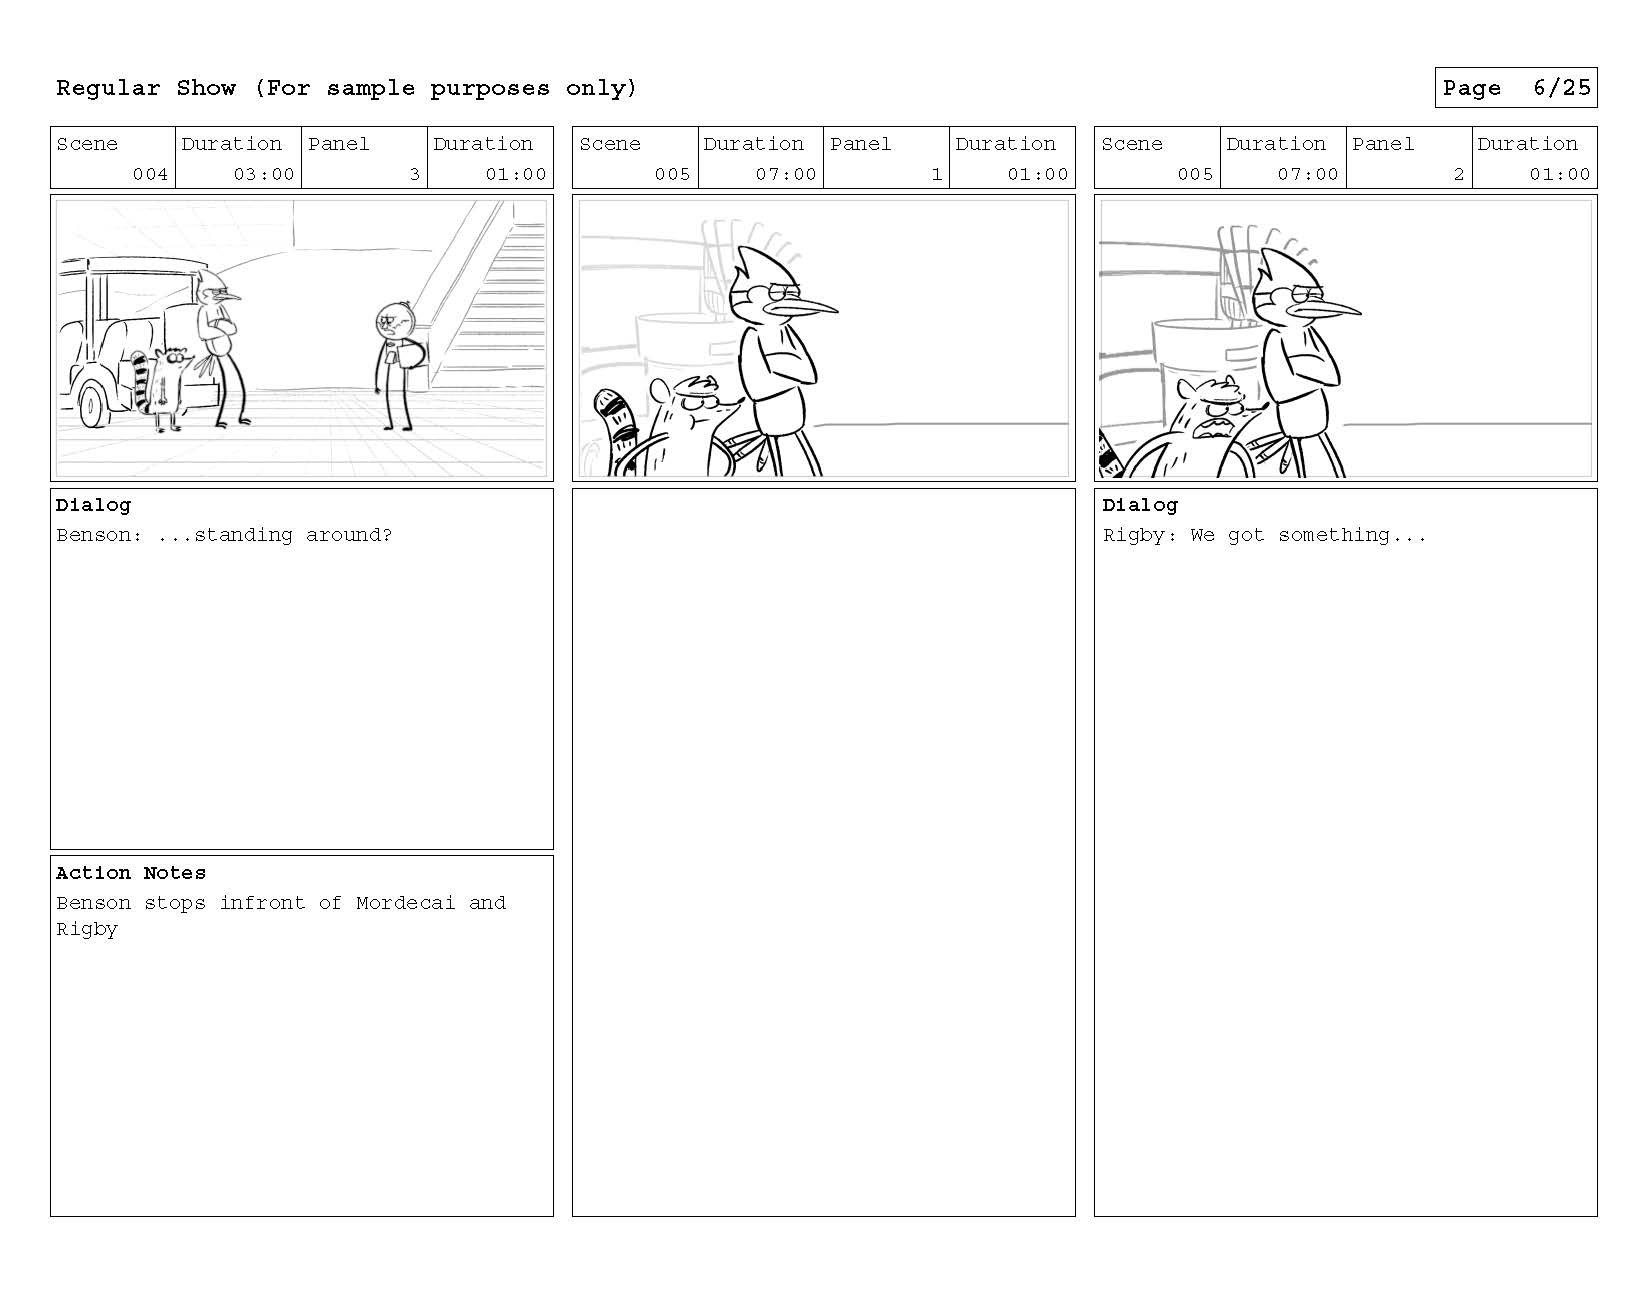 thelfer_rs_sample_Page_07.jpg